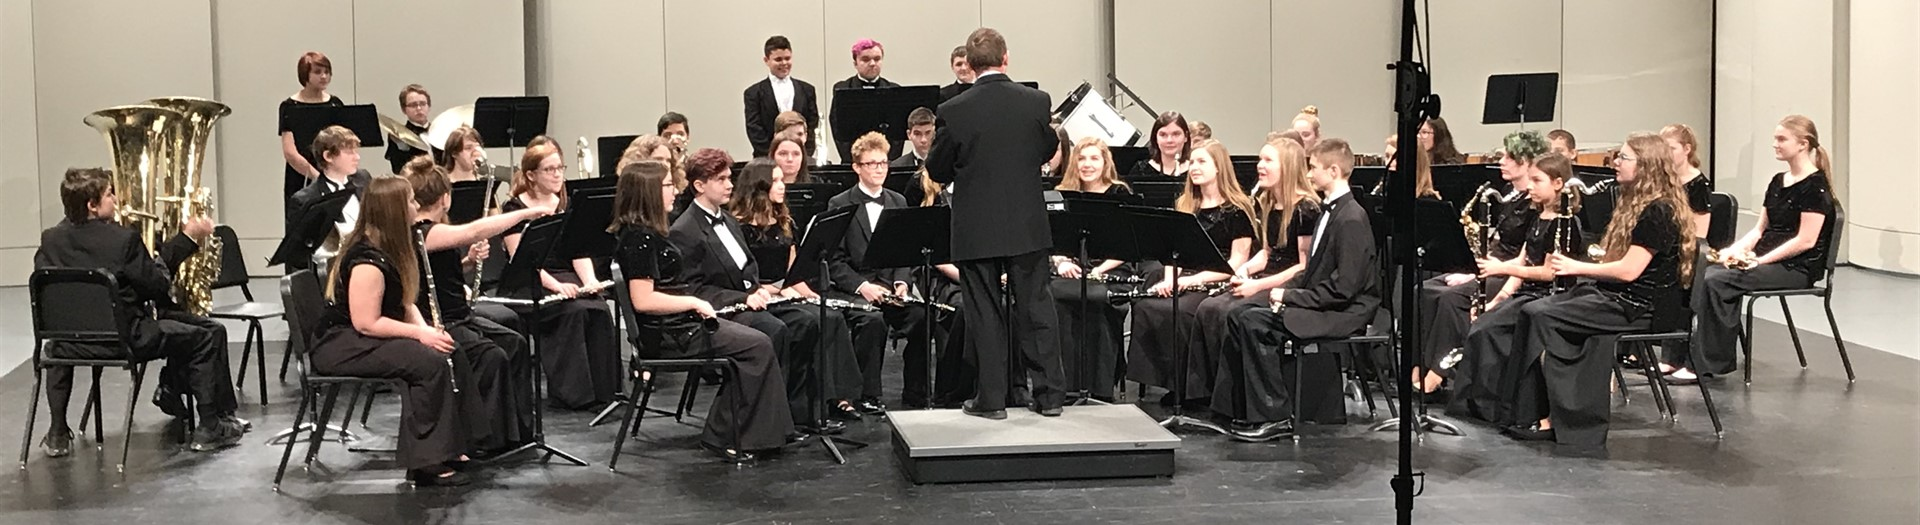 Middle school band students receive a score of 1 at the 2018 Band Festival.